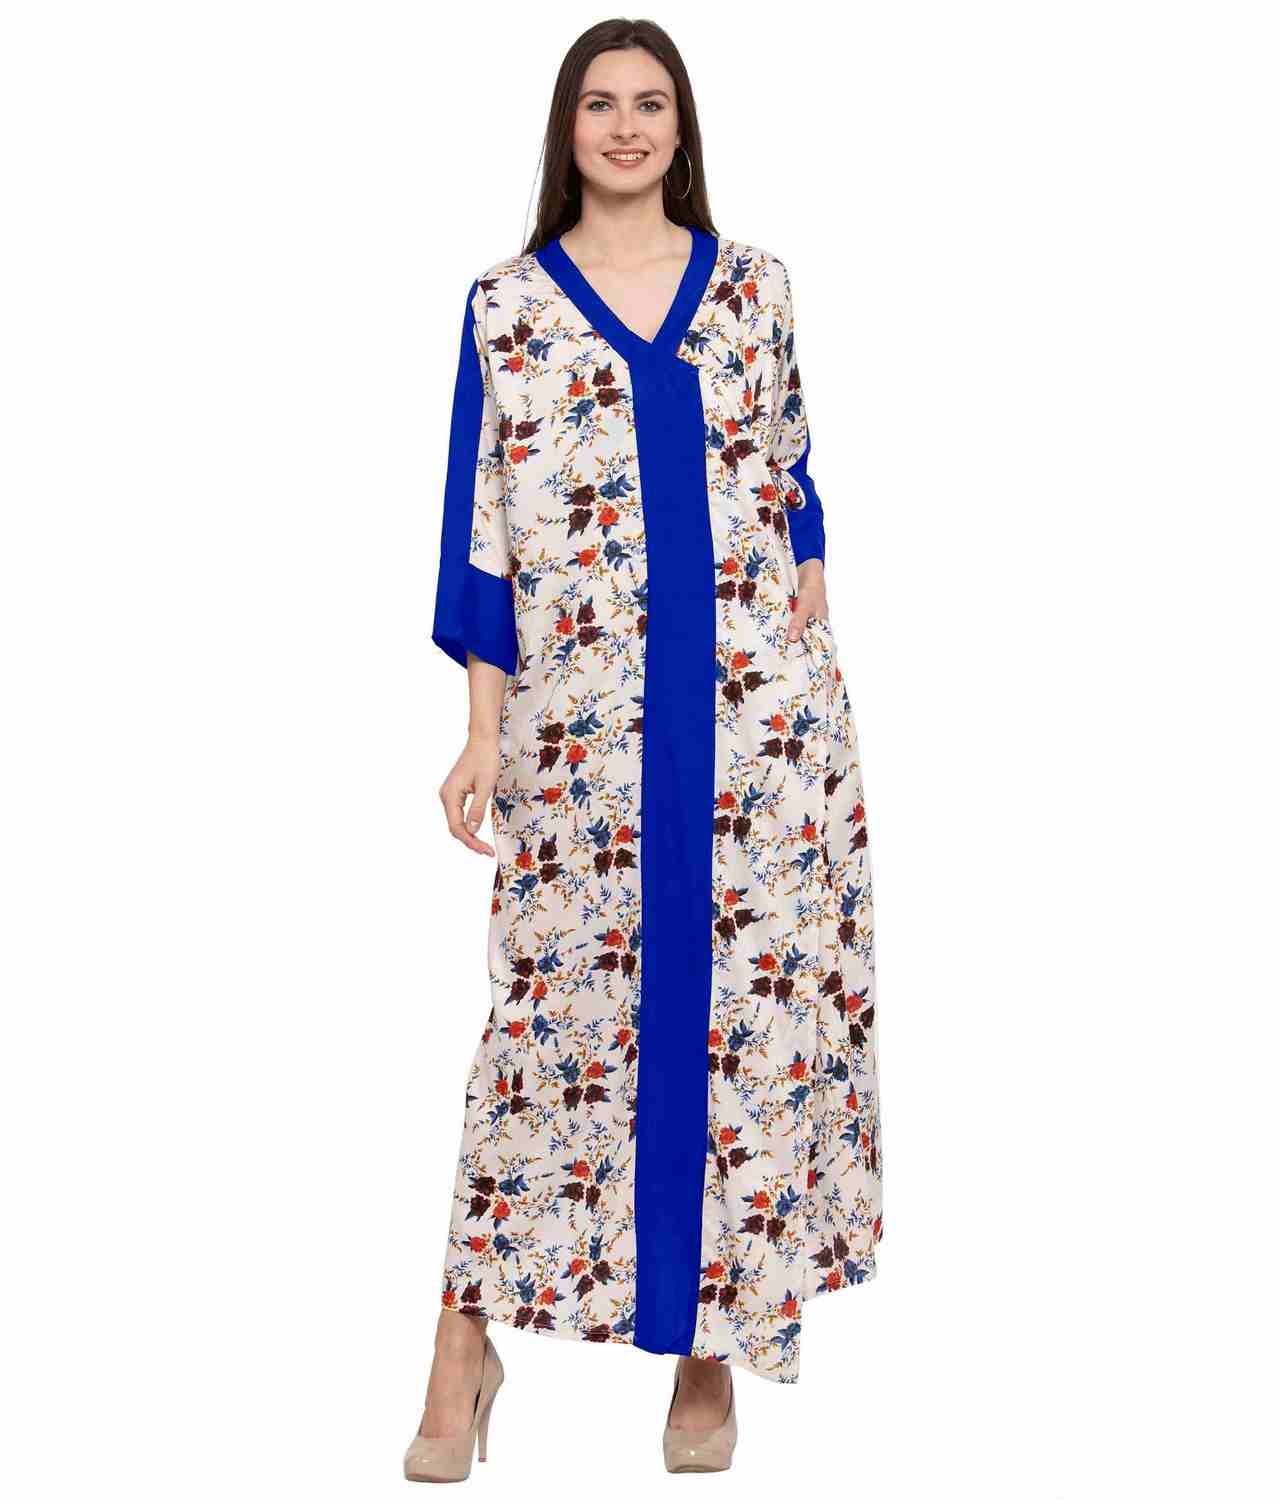 Floral Wrap Maxi Night-Gown Nighty in Royal Blue:Cream Print